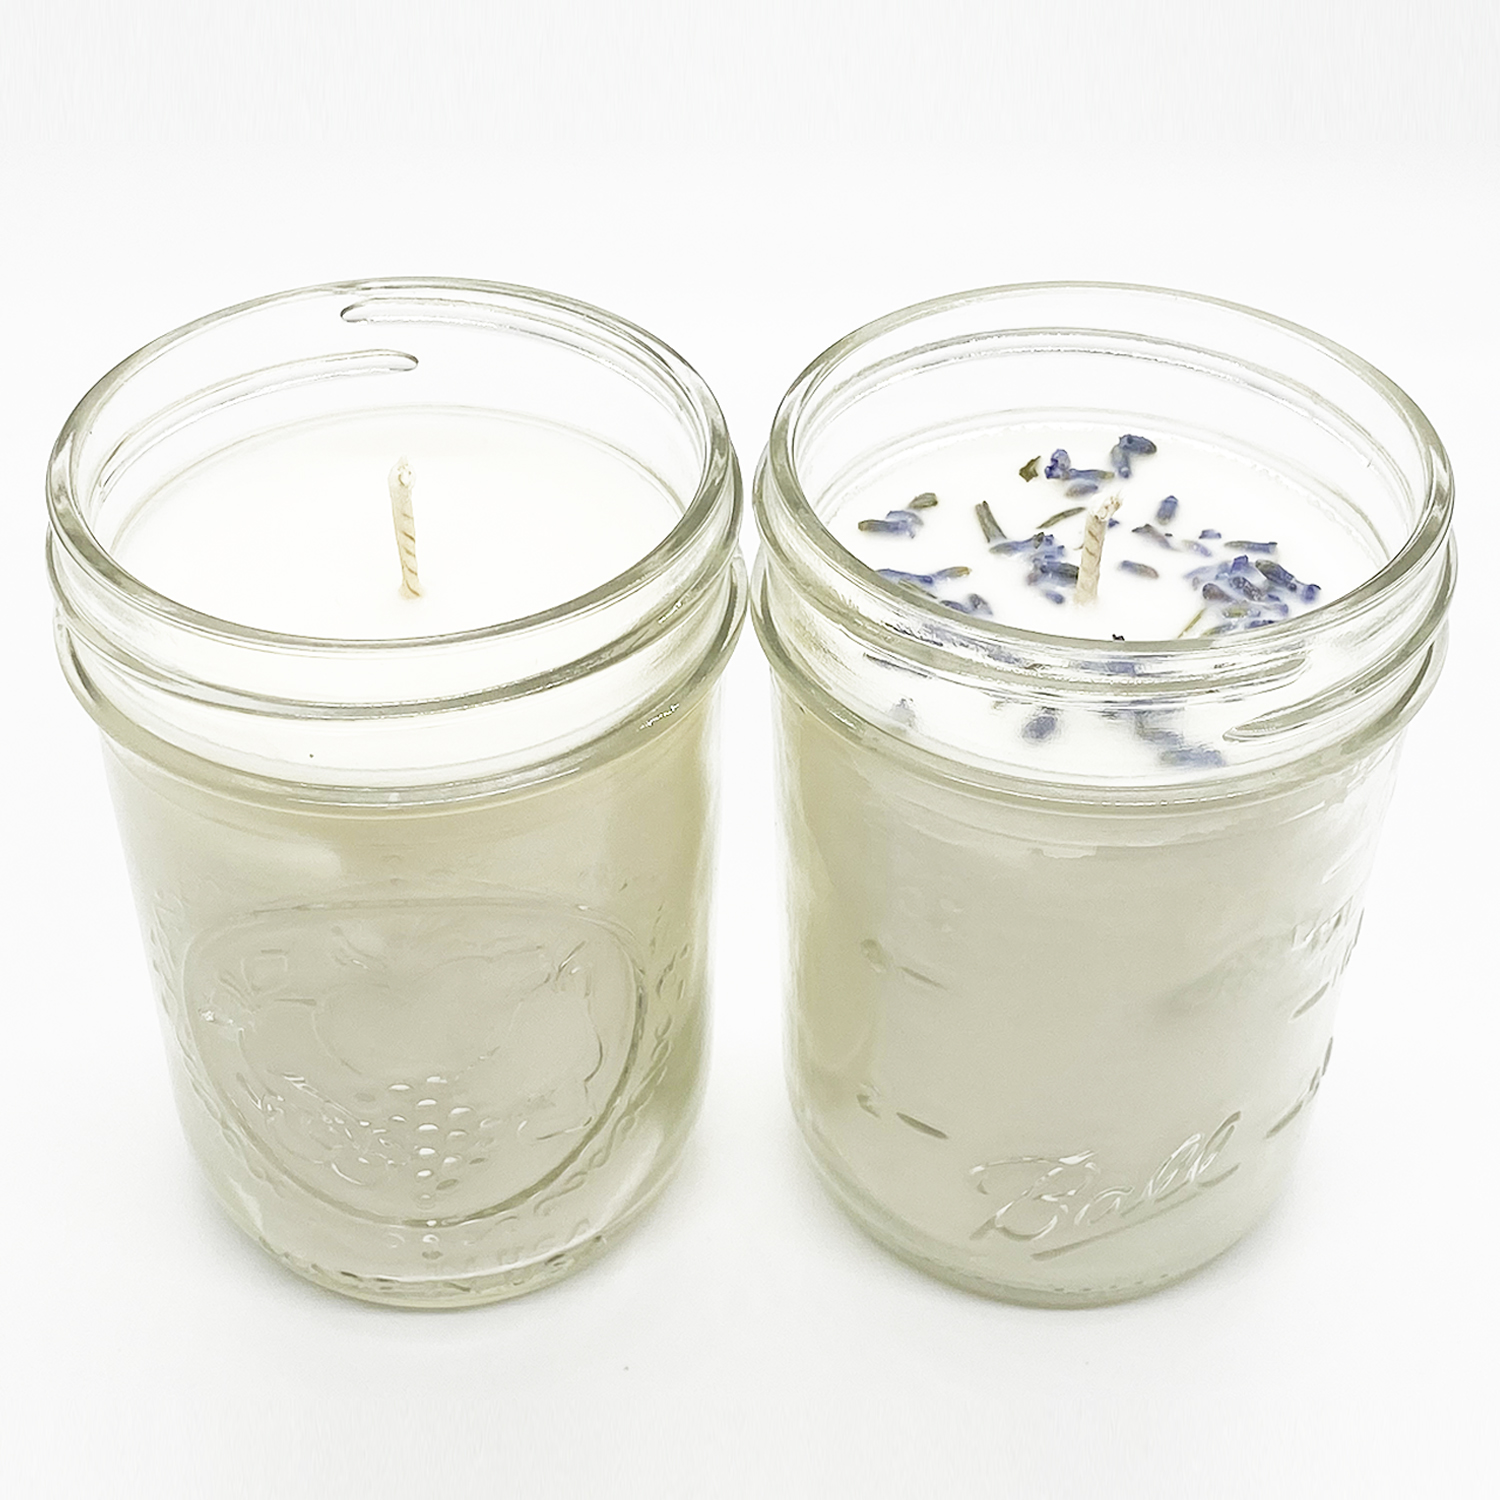 LM WY CANDLE BUNDLE